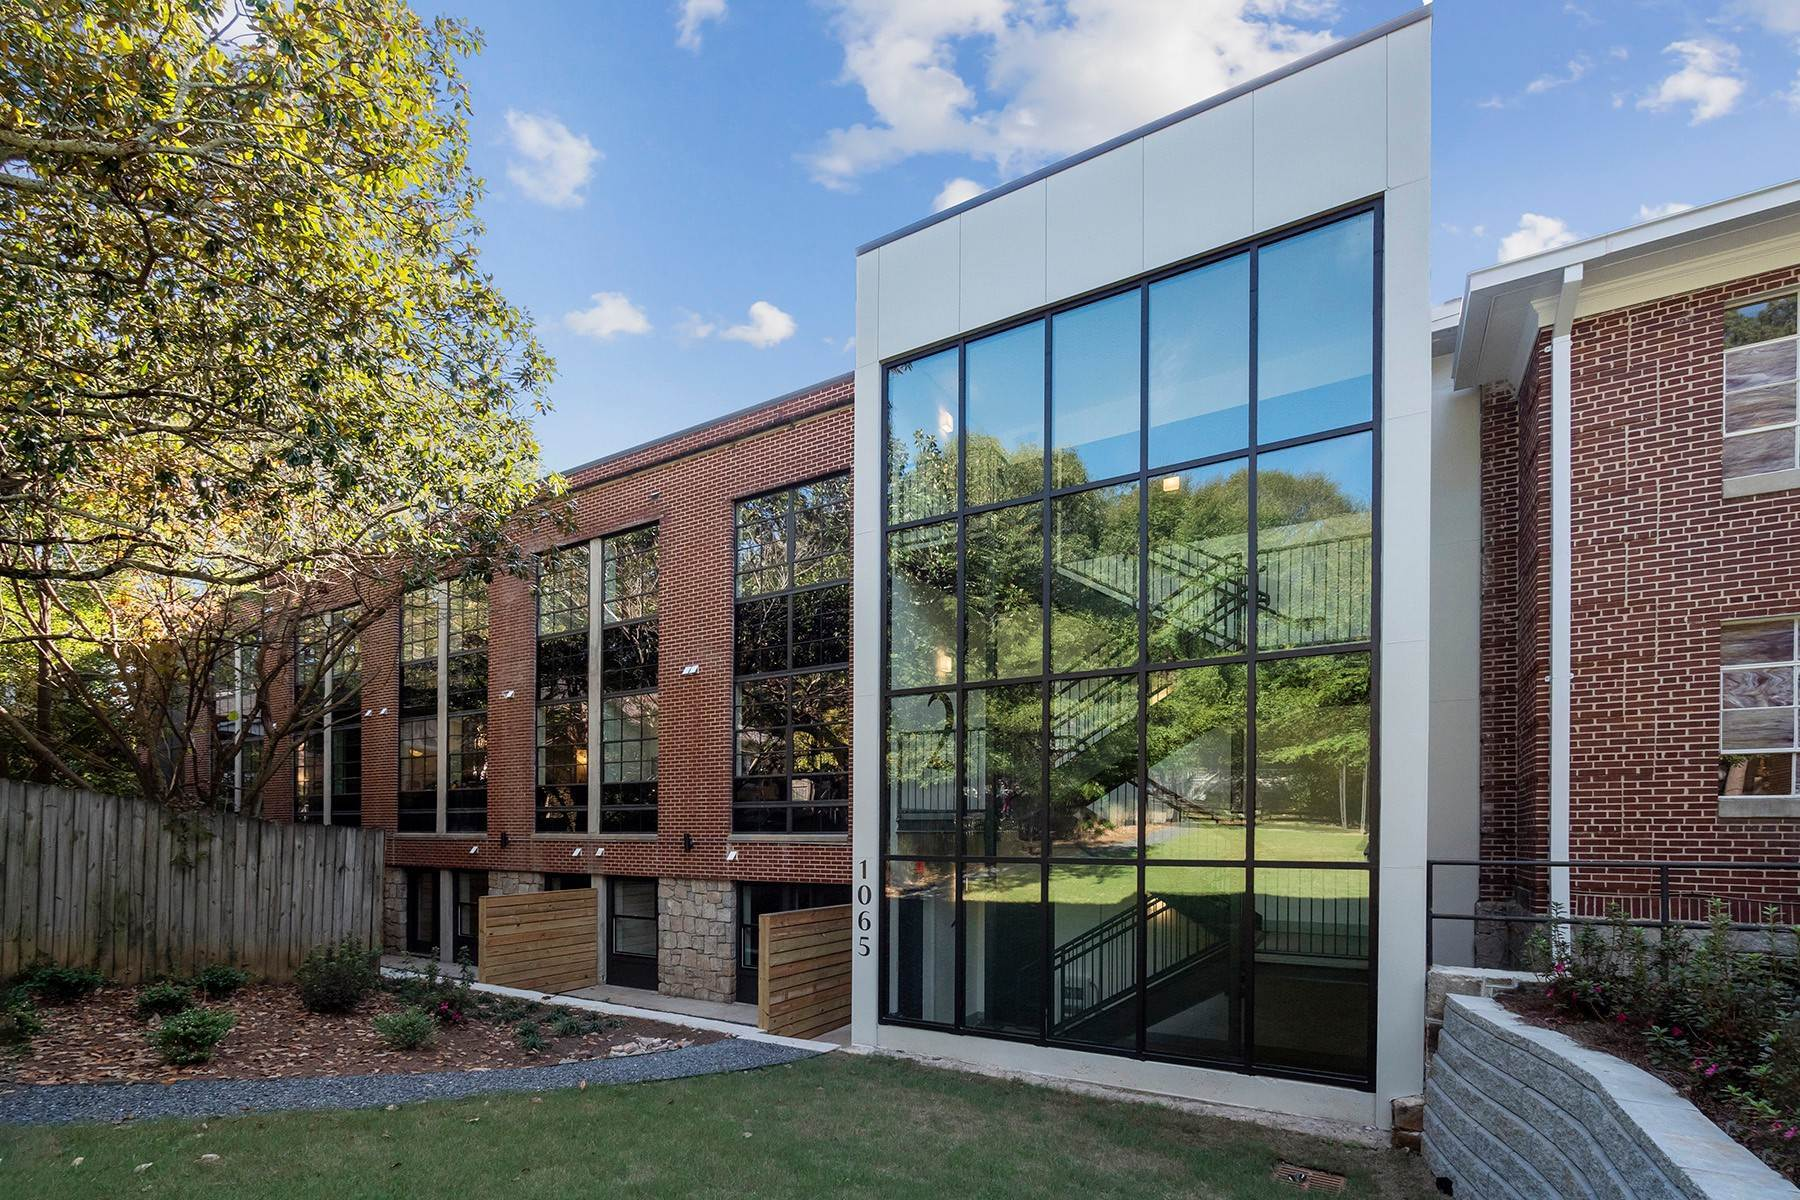 Condominiums for Sale at United Lofts: Industrial Meets Modern Elegance 1065 United Avenue, No. 206 Atlanta, Georgia 30316 United States